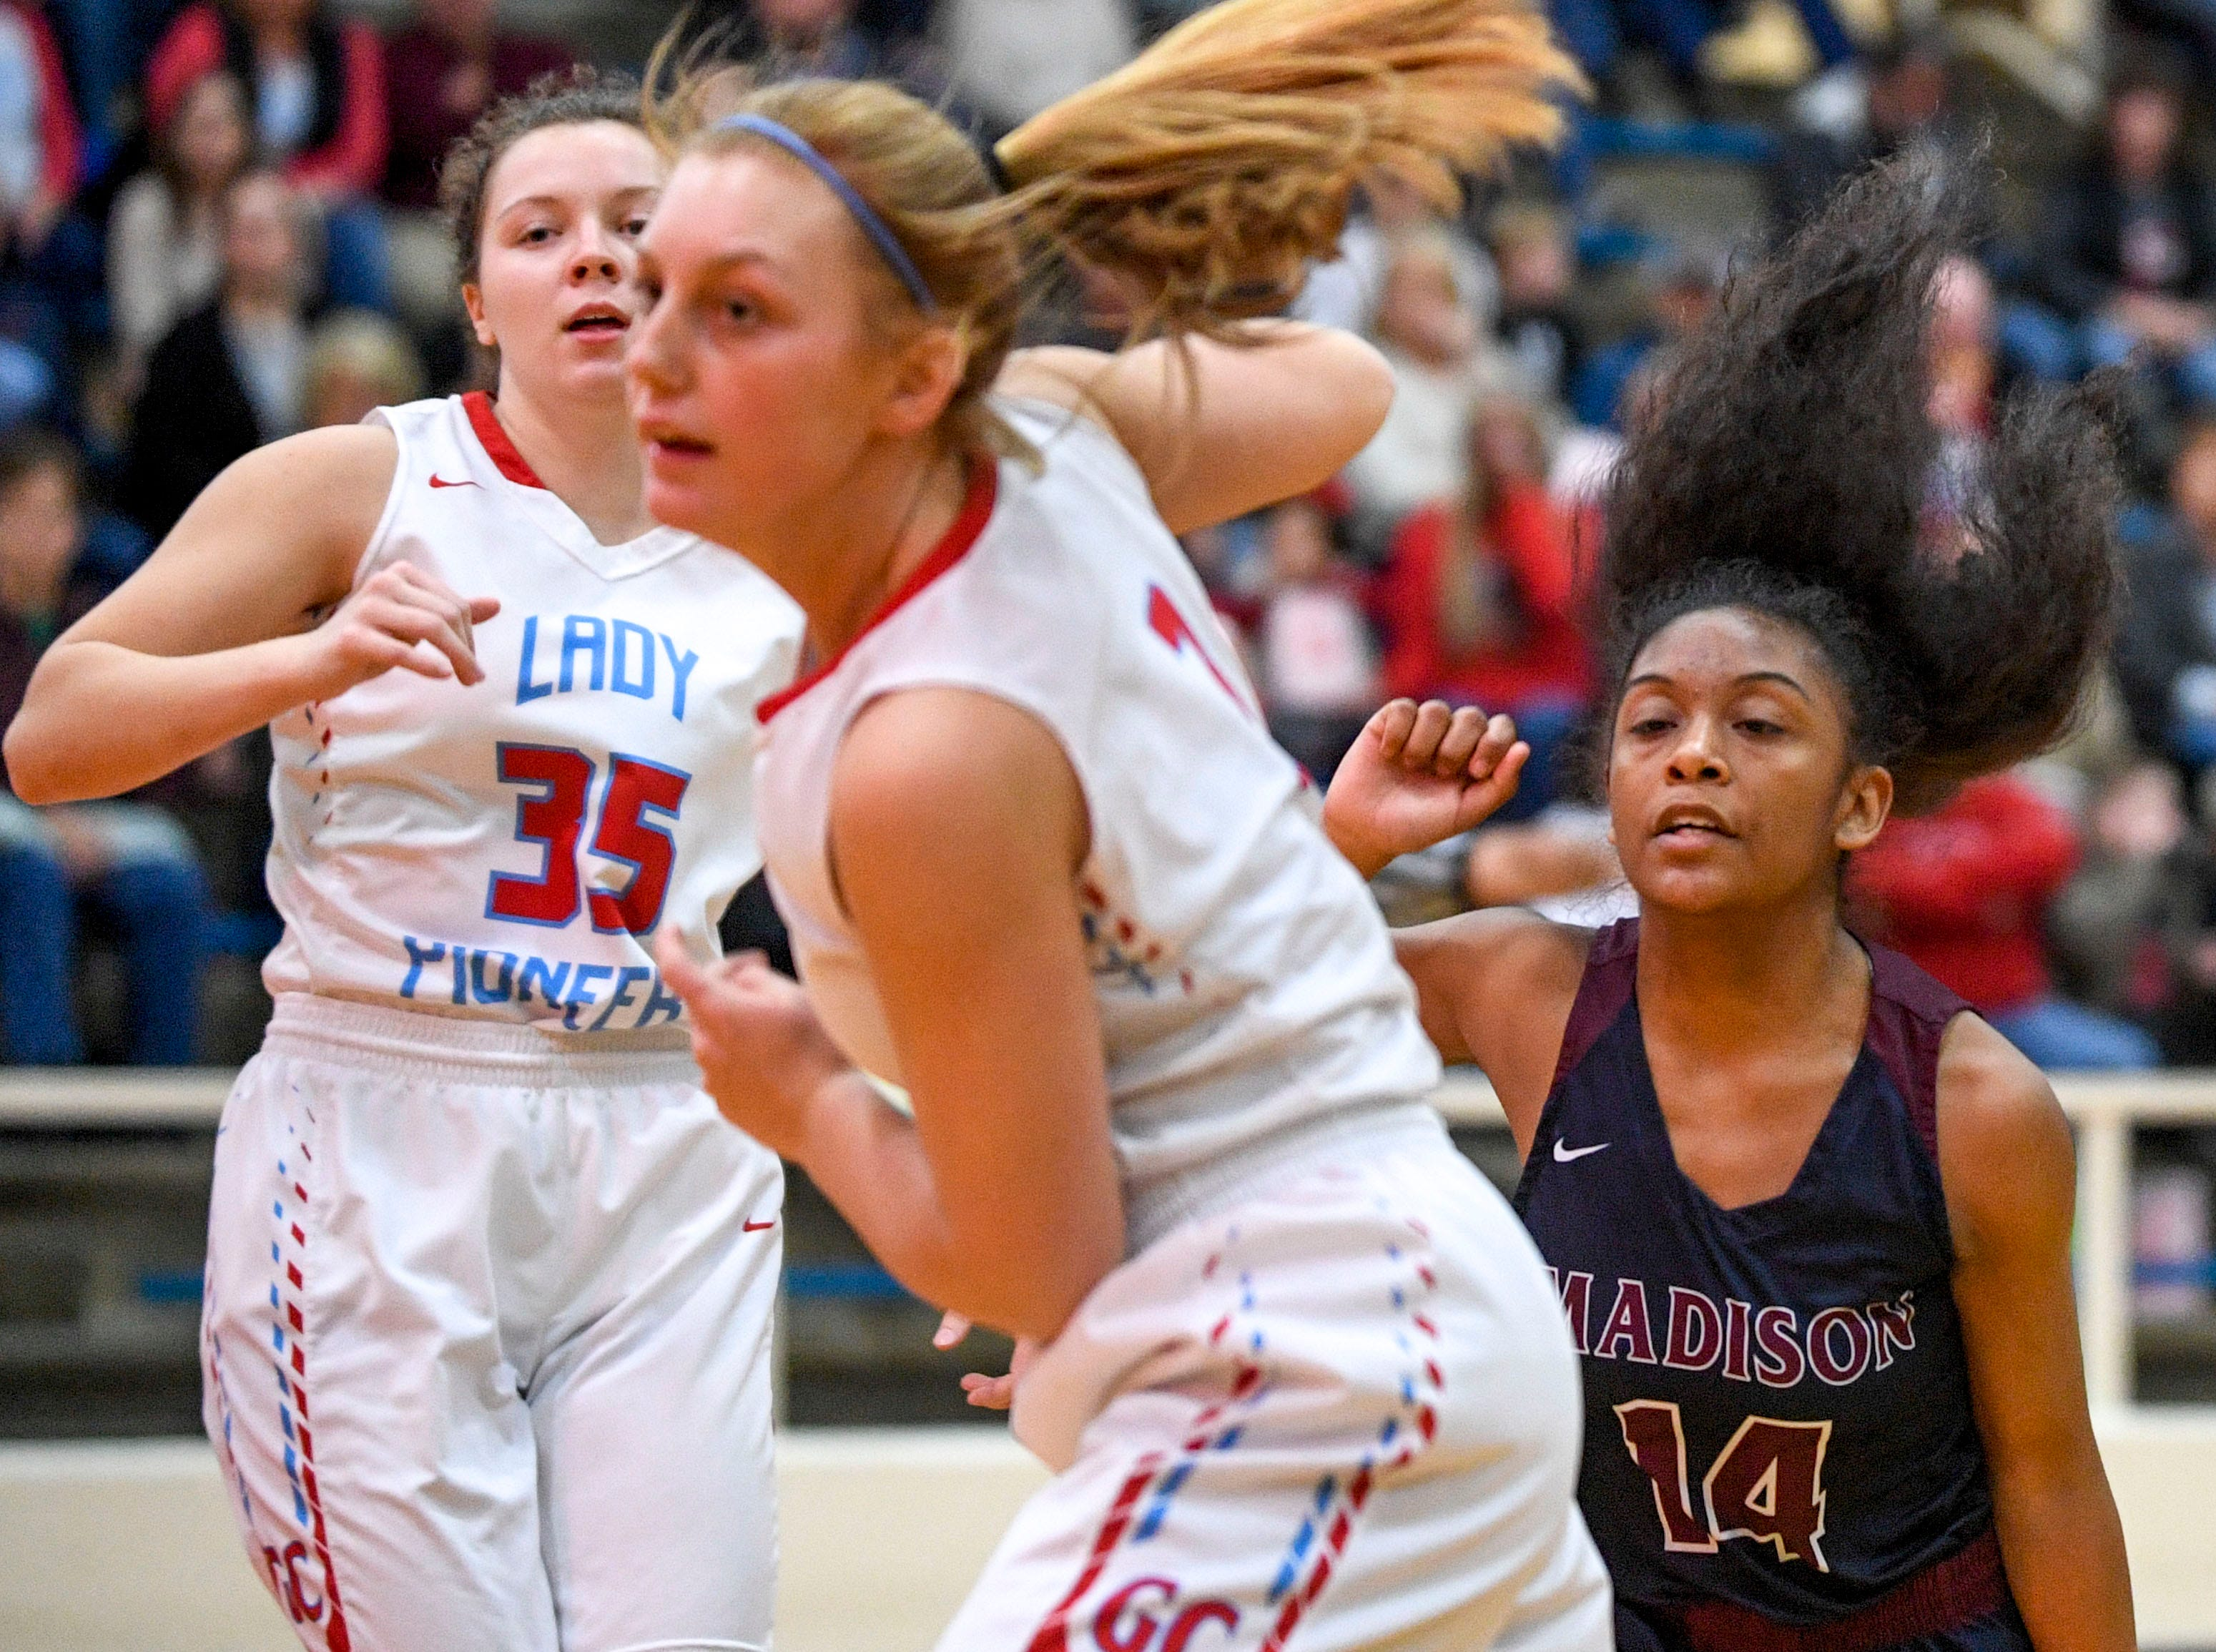 Gibson County's Macey Neal (3) and Hannah Ball (35) look up after Madison Academic's Carmen Echols (14) passes the ball to a teammate during the TSSAA girls 14-A semifinals basketball game between Gibson County and Madison Academic at Gibson County High School in Dyer, Tenn., on Friday, Feb. 15, 2019.